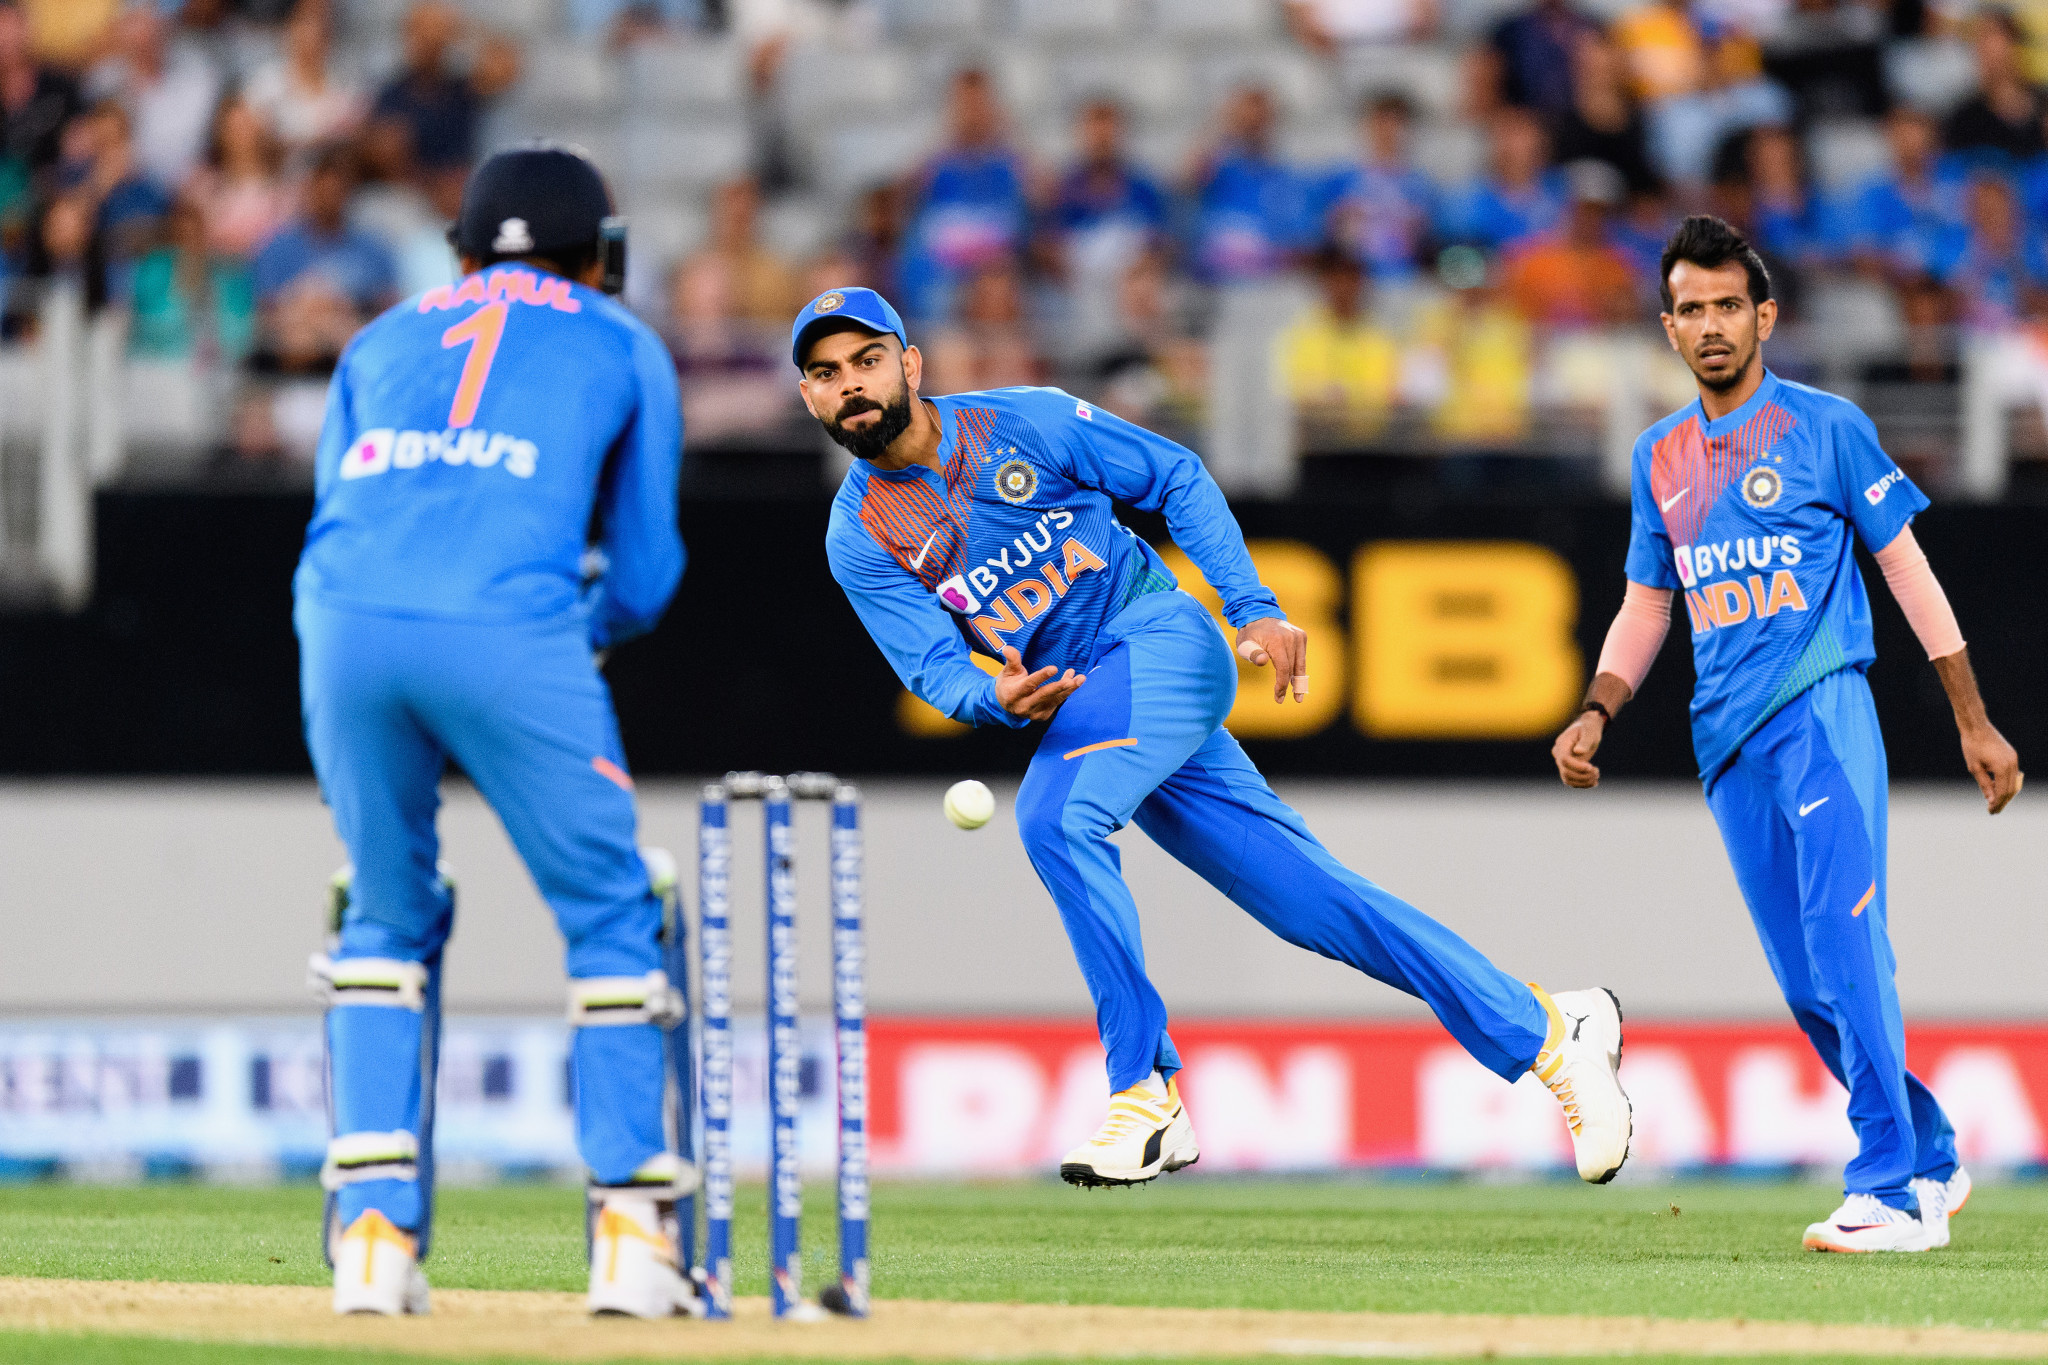 Indian players would be willing to self-isolate in Australia for 14 days, according to a senior official ©Getty Images